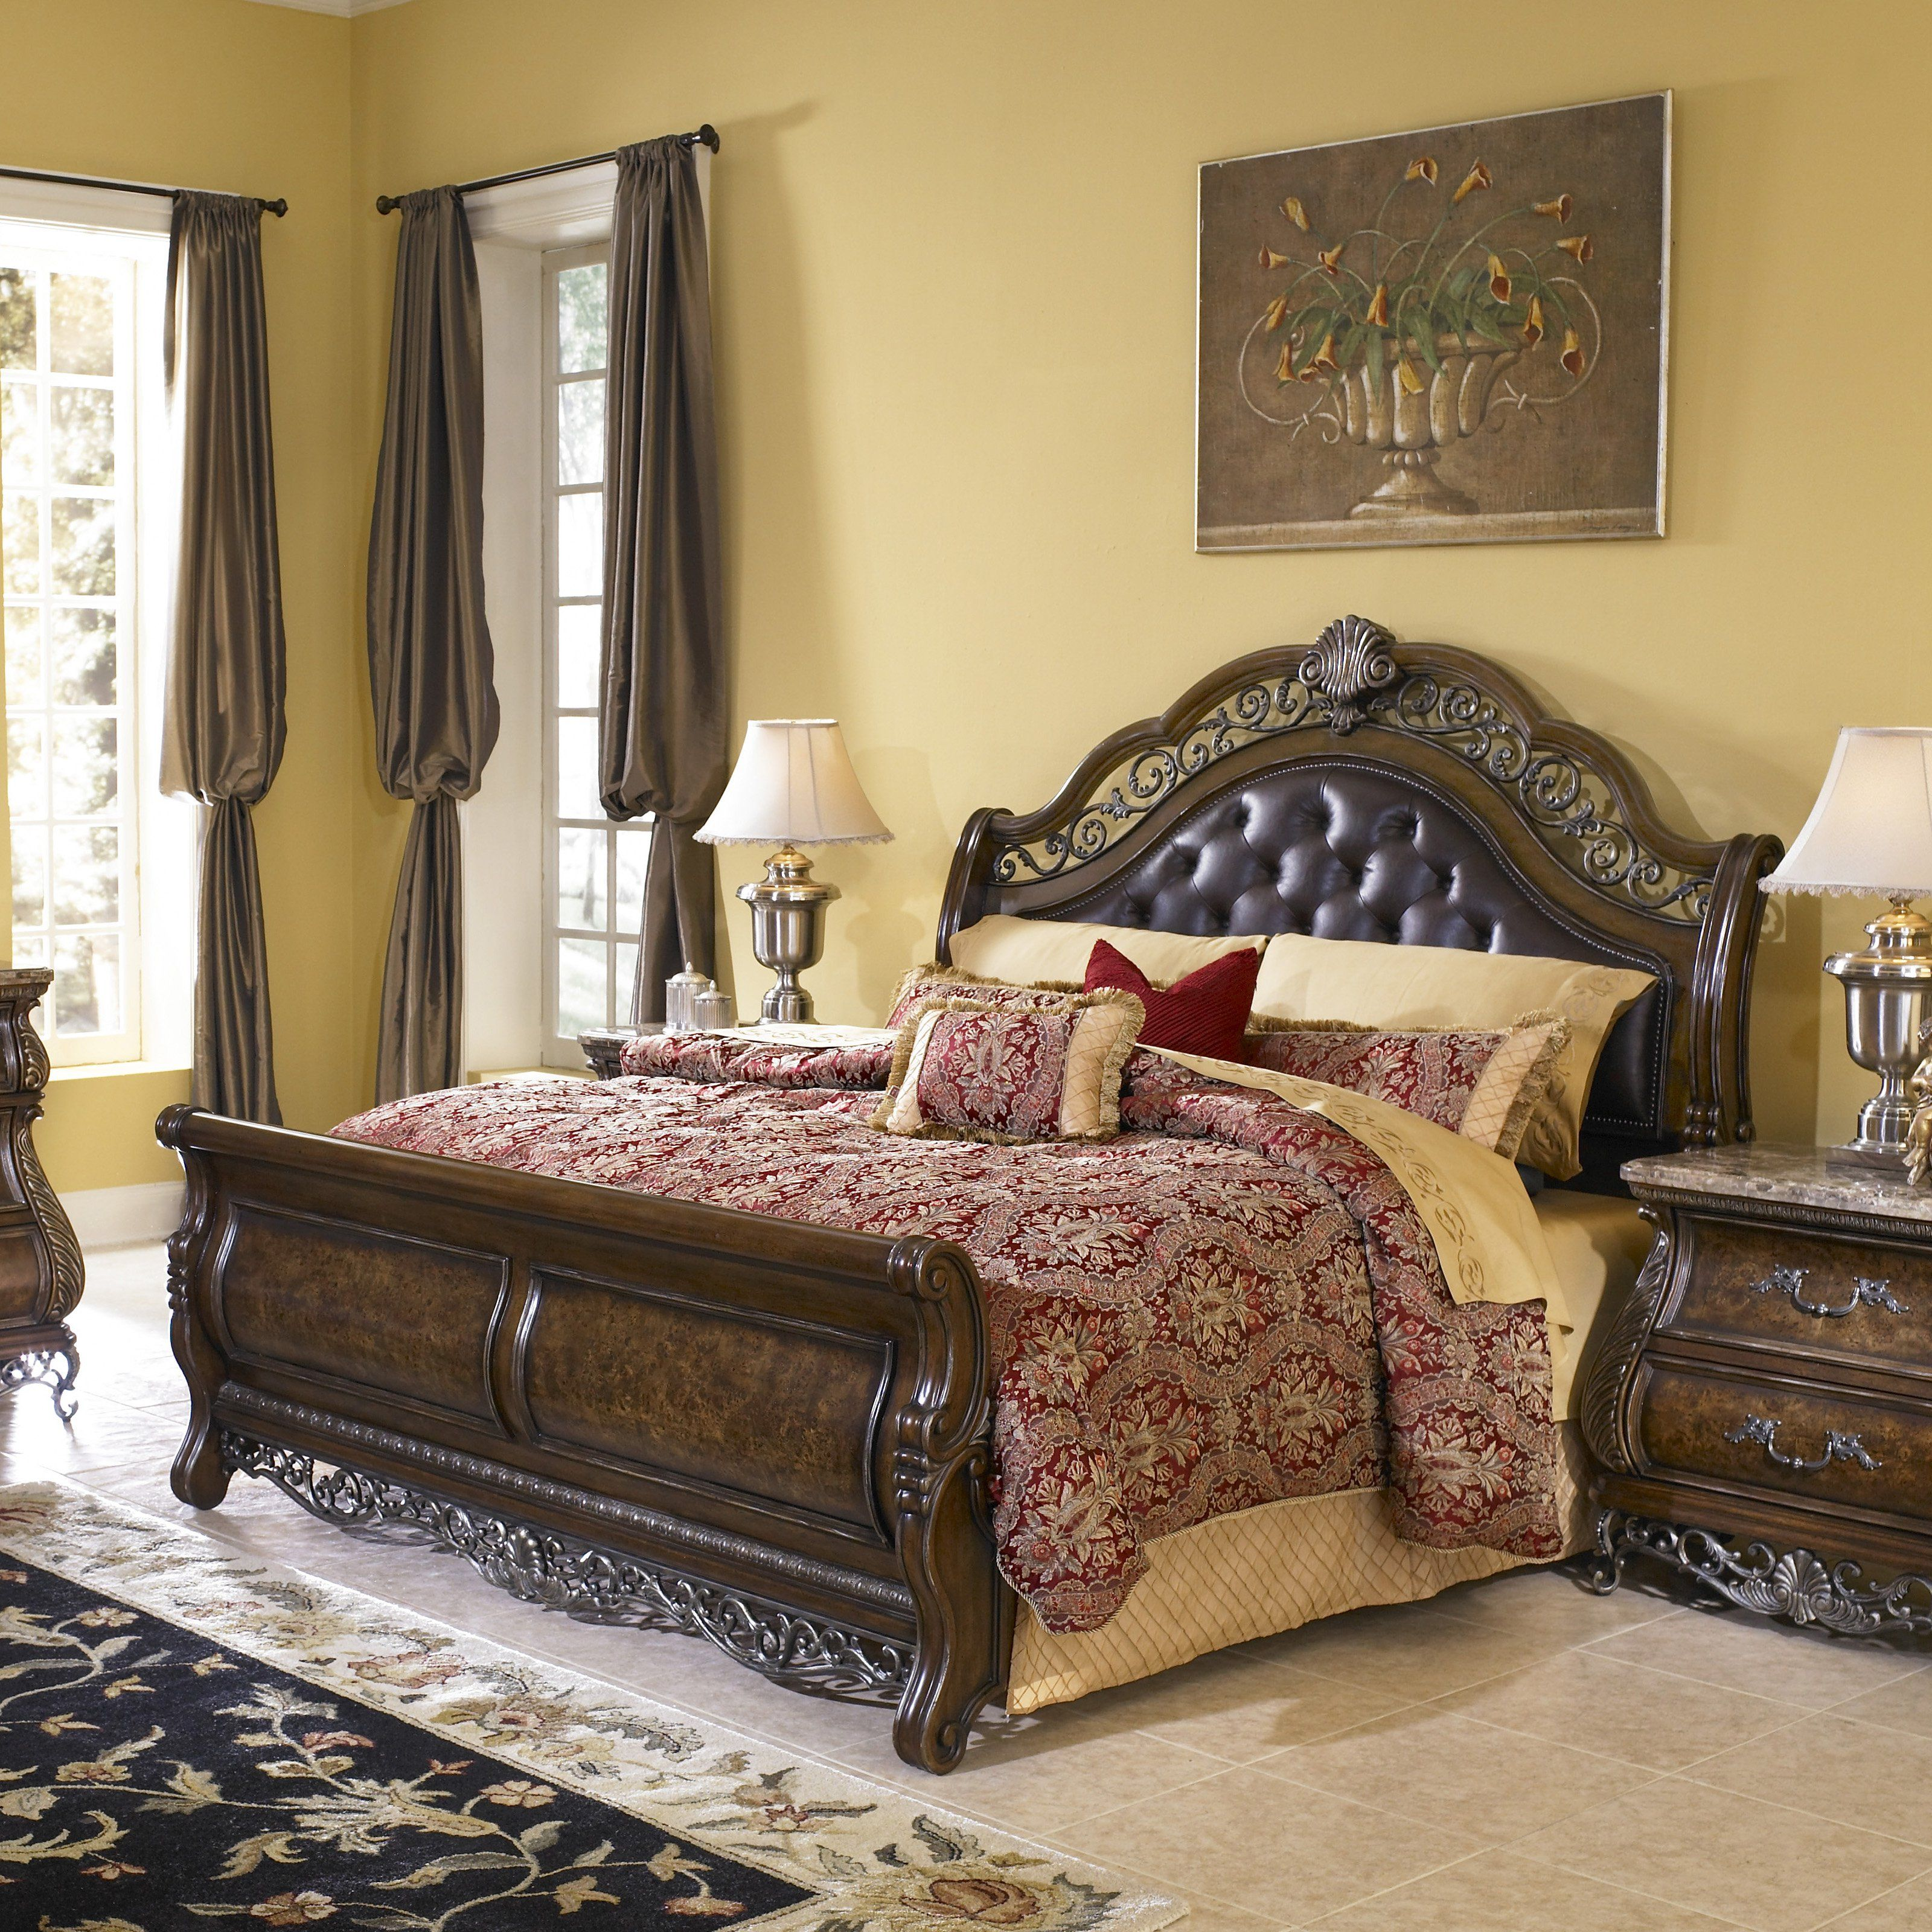 Birkhaven Sleigh Bed Set from Bed